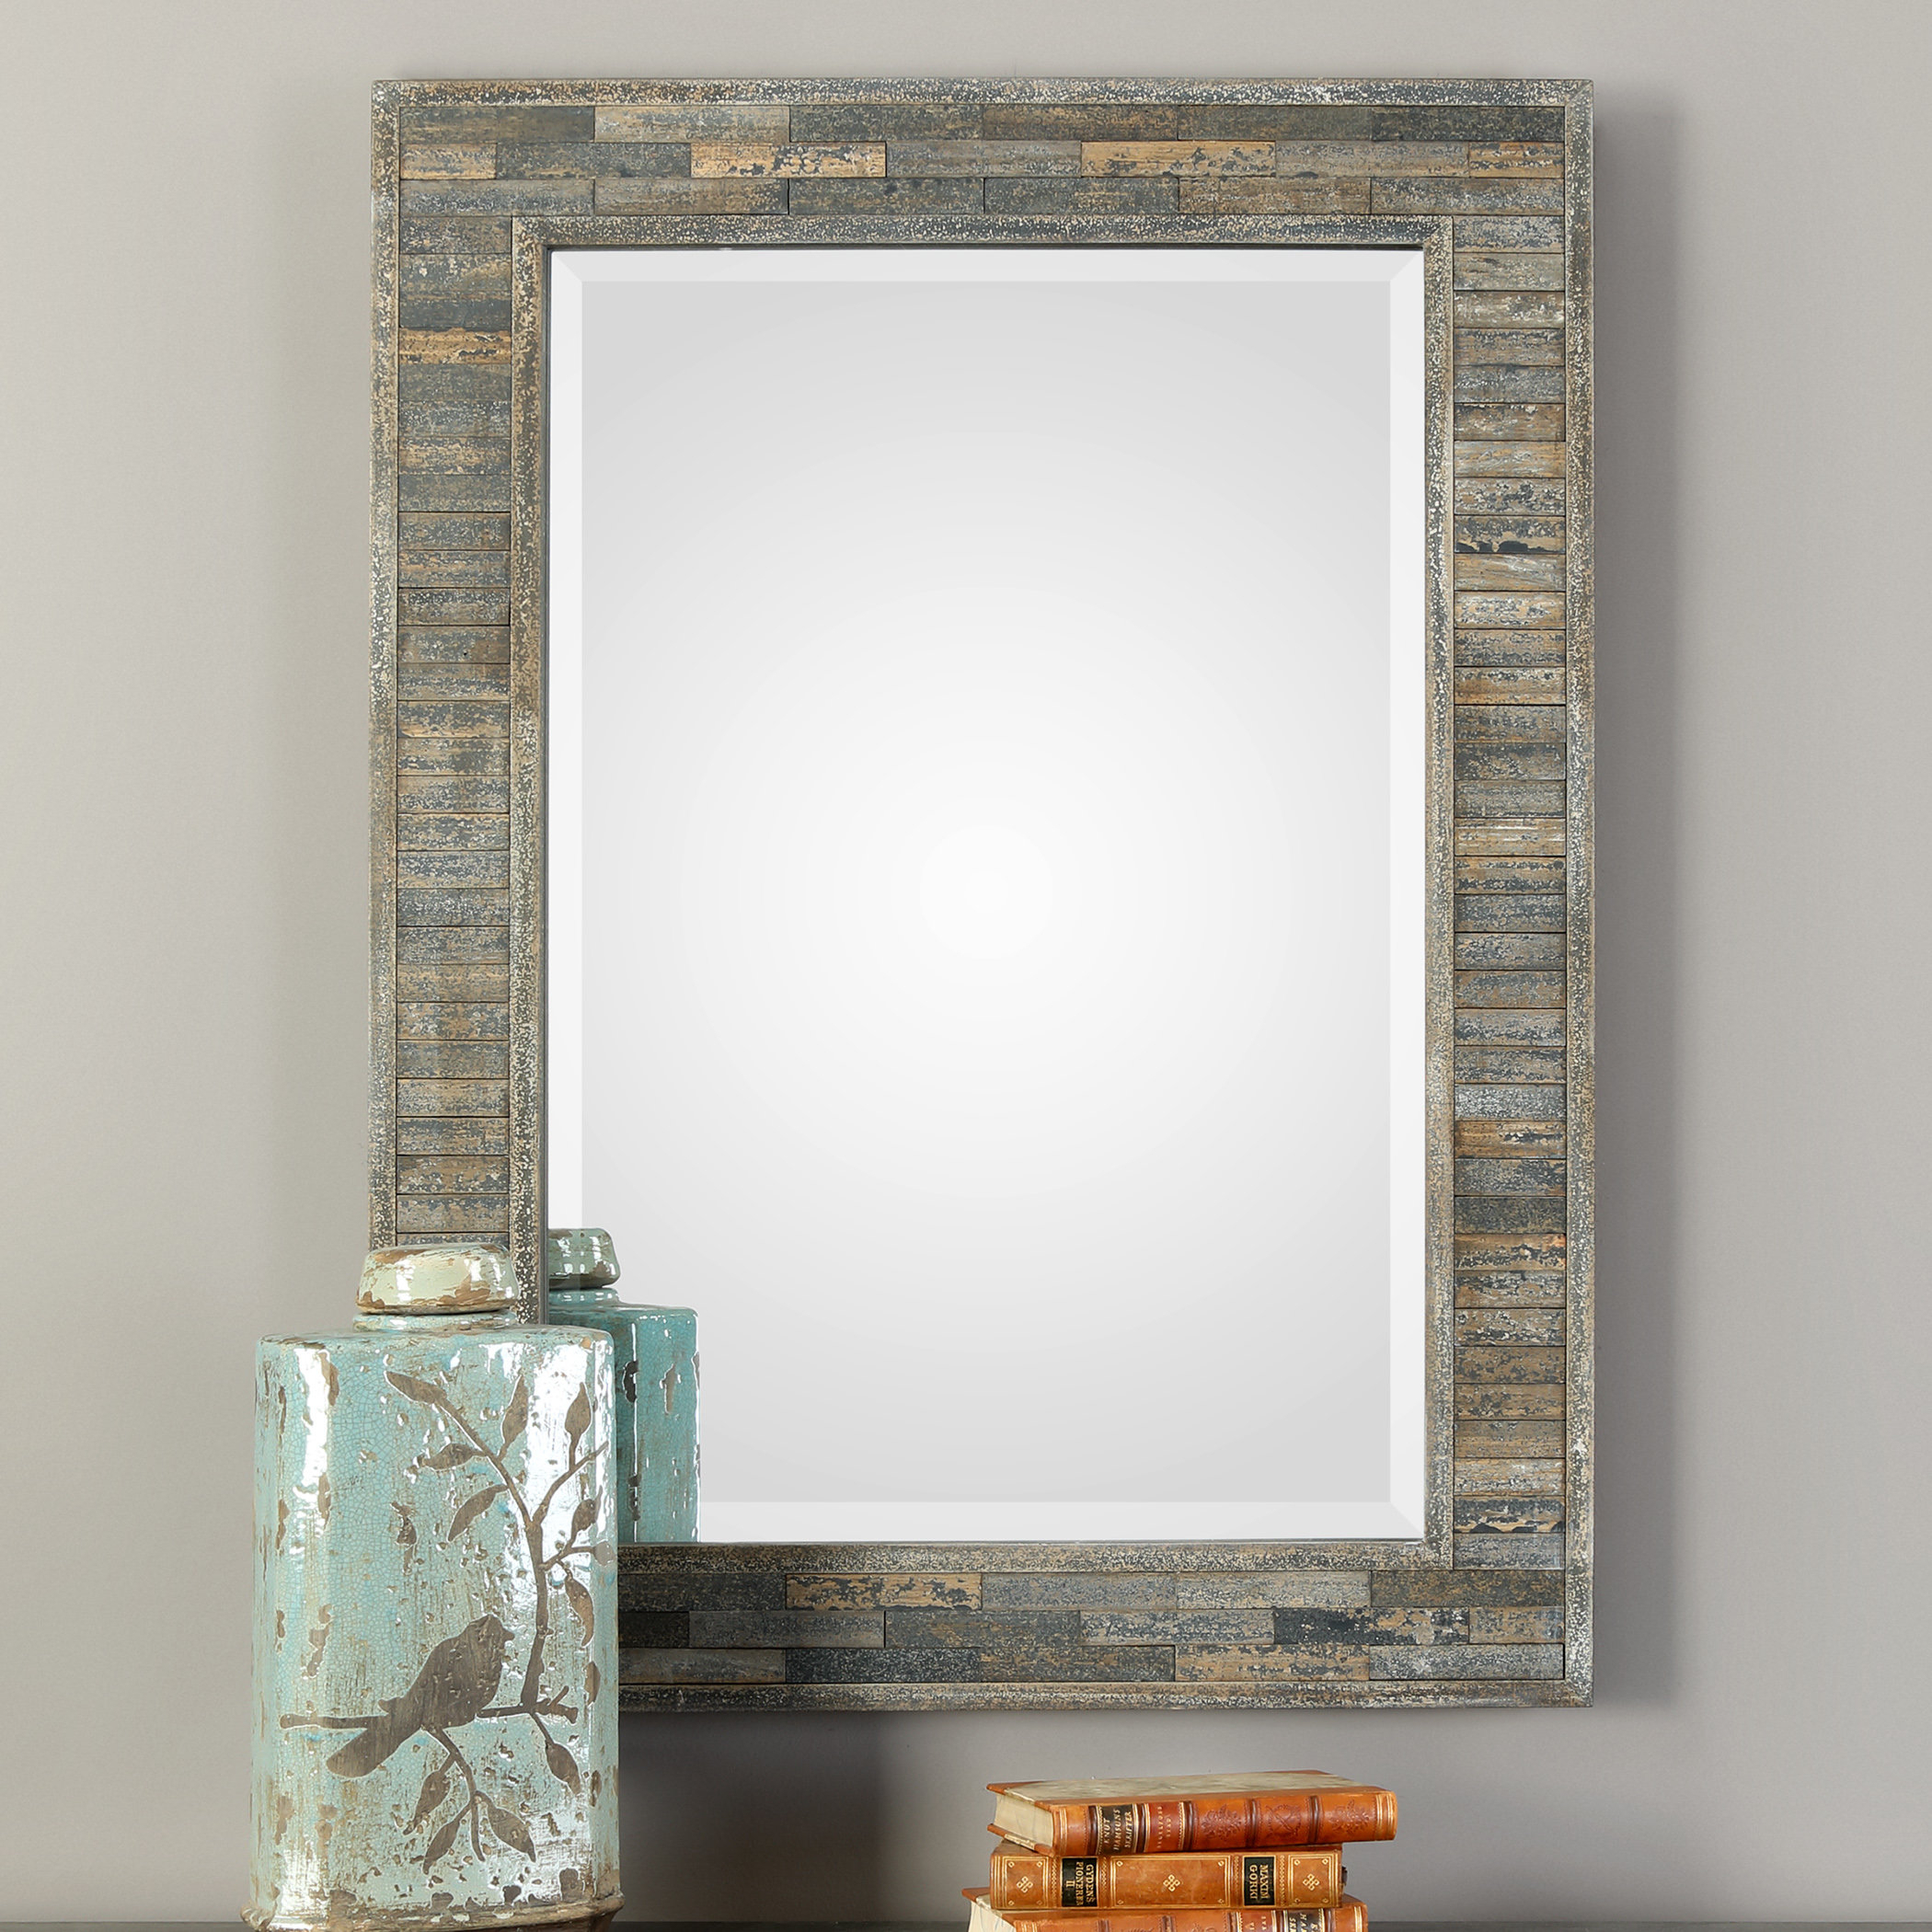 Farmhouse & Rustic Union Rustic Wall & Accent Mirrors inside Longwood Rustic Beveled Accent Mirrors (Image 7 of 30)